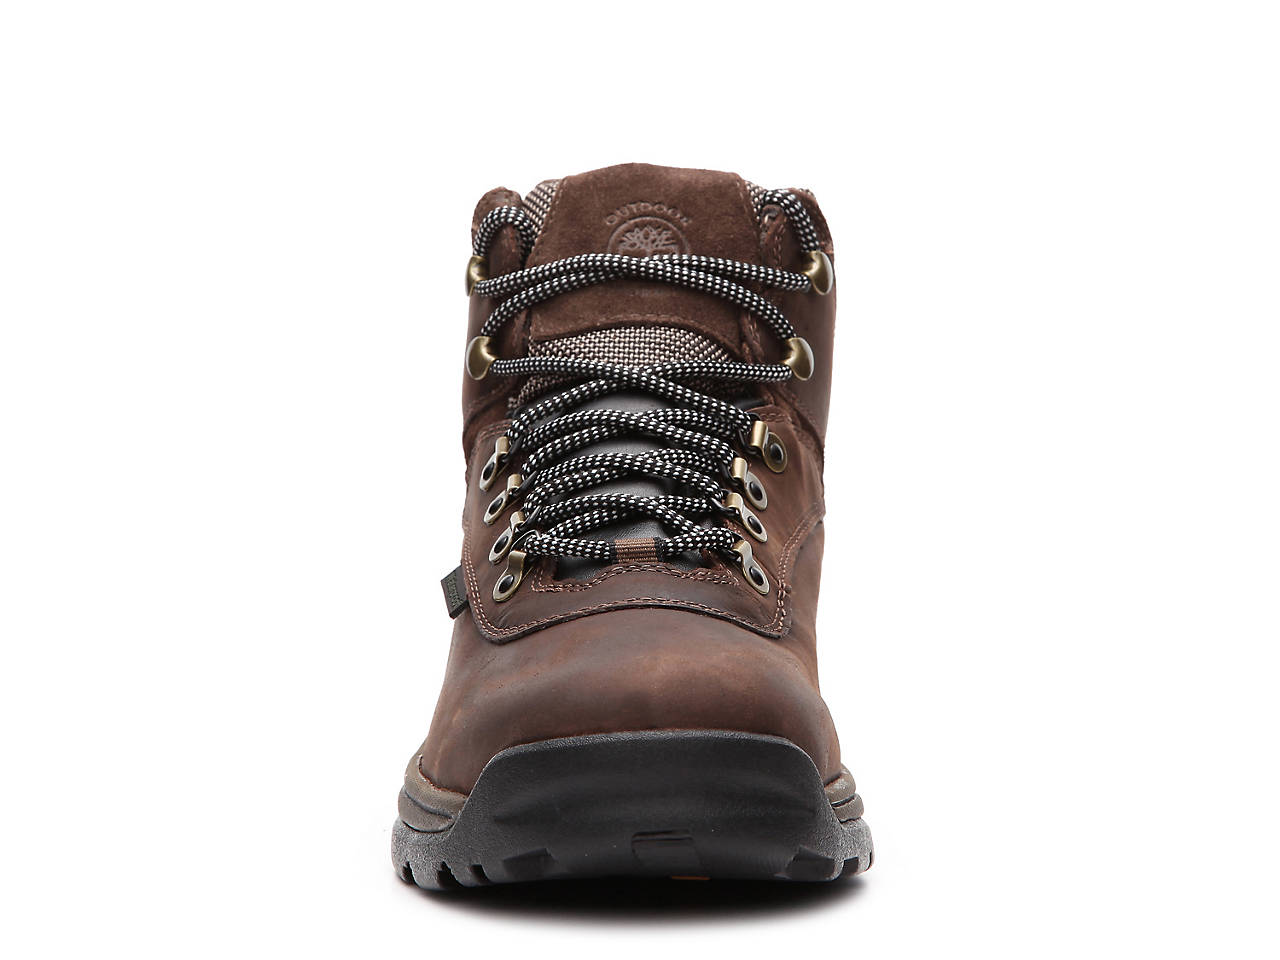 8d4193f35 Home · Men's Shoes · Boots; White Ledge Hiking Boot. previous